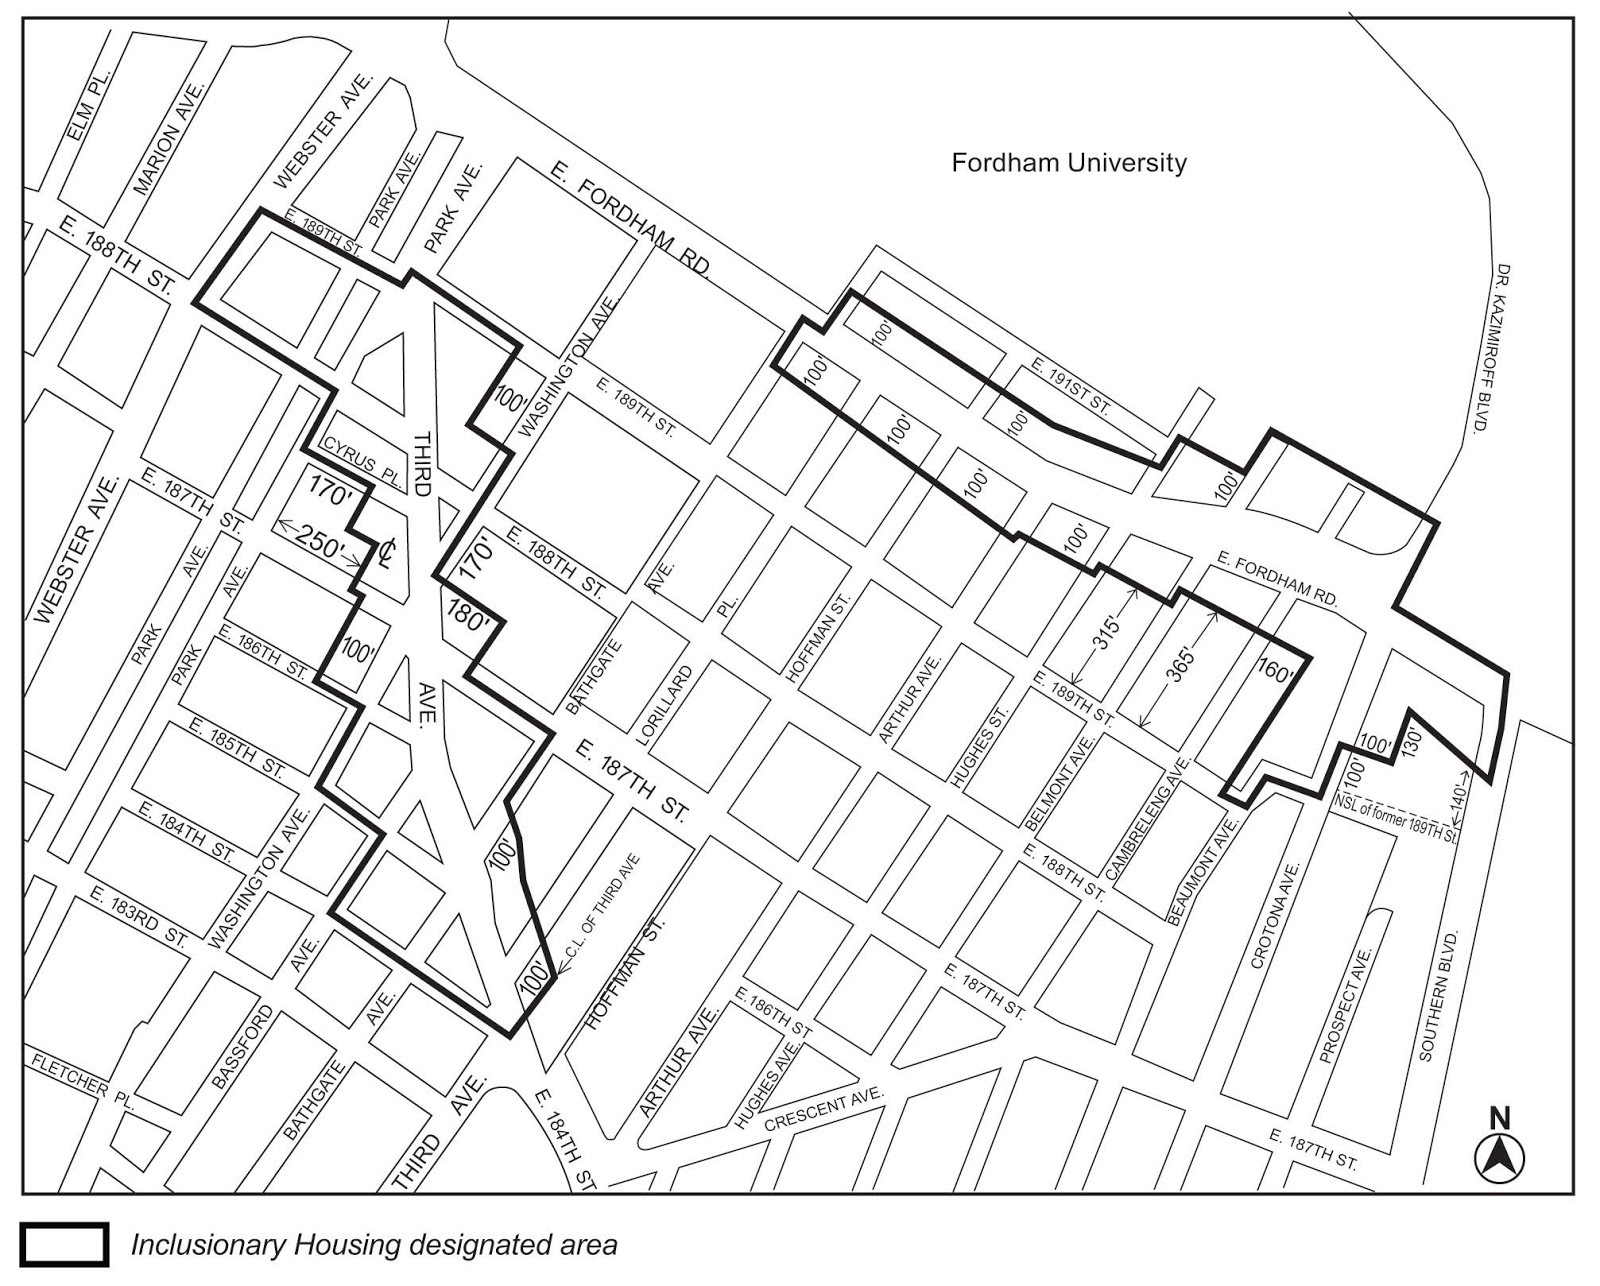 Zoning Resolutions F-Inclusionary Housing Designated Areas and Mandatory Inclusionary Housing Areas_2.20